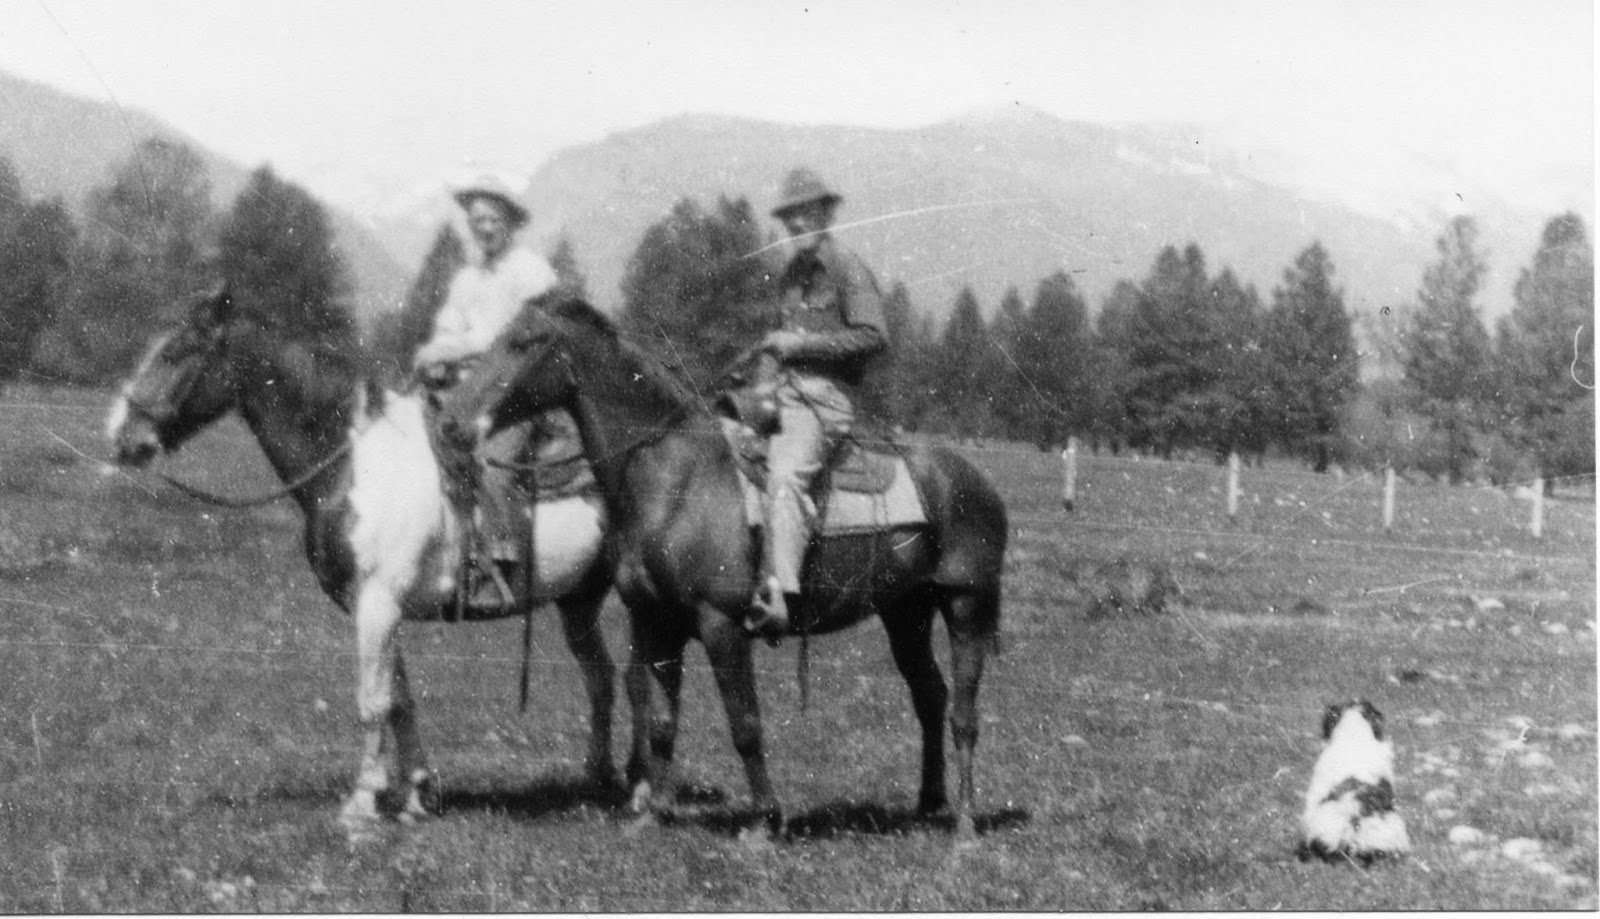 1949 My Dad and Grandfather @ Fort Owen Ranch, Stevensville, Montana http://www.jinglejanglejungle.net/2014/12/cowboy-songs.html